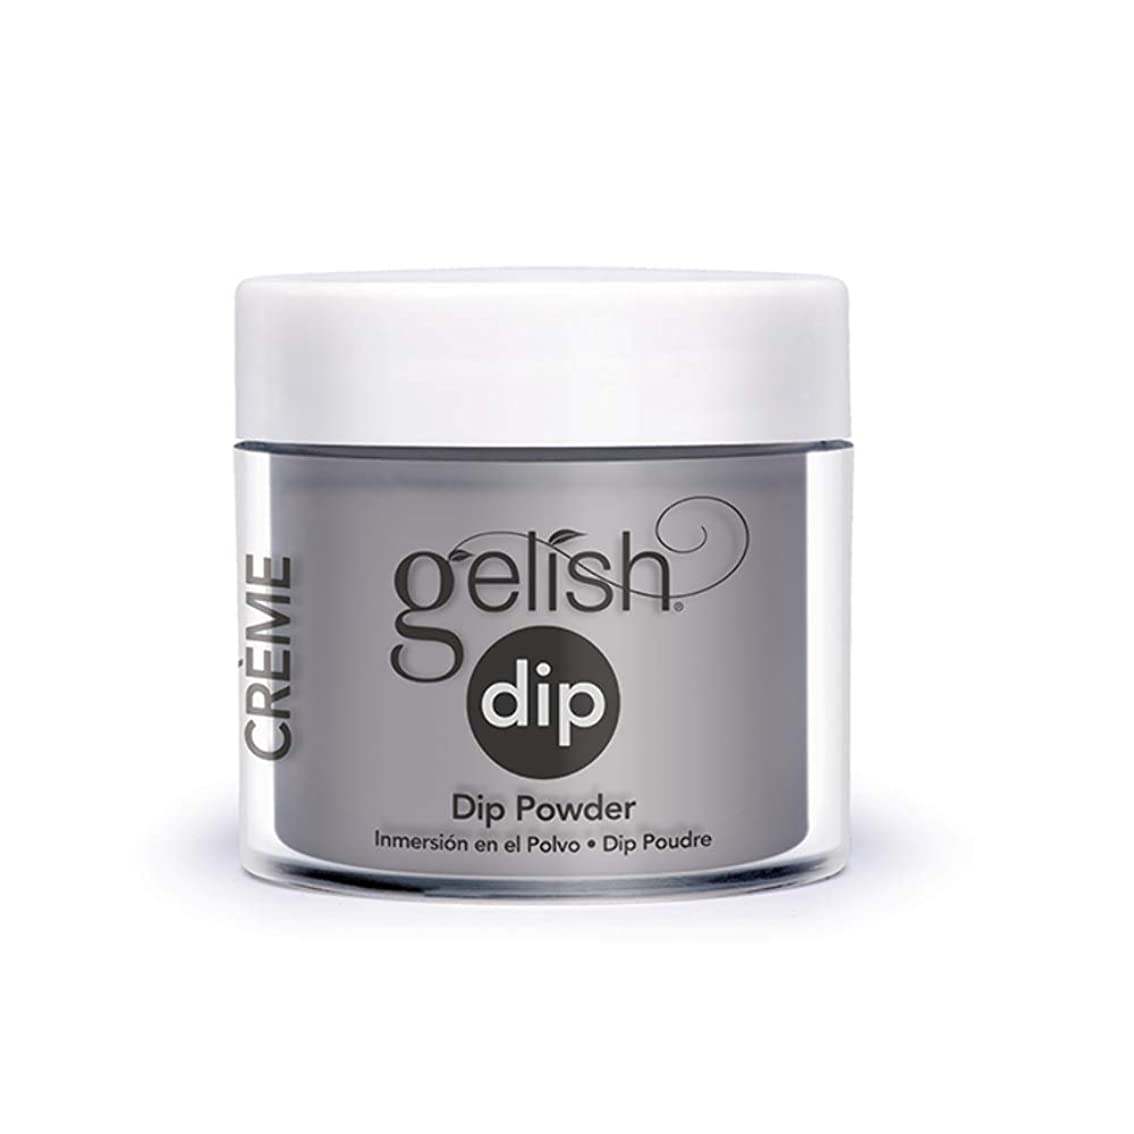 相談する音節スリップシューズHarmony Gelish - Acrylic Dip Powder - Clean Slate - 23g / 0.8oz